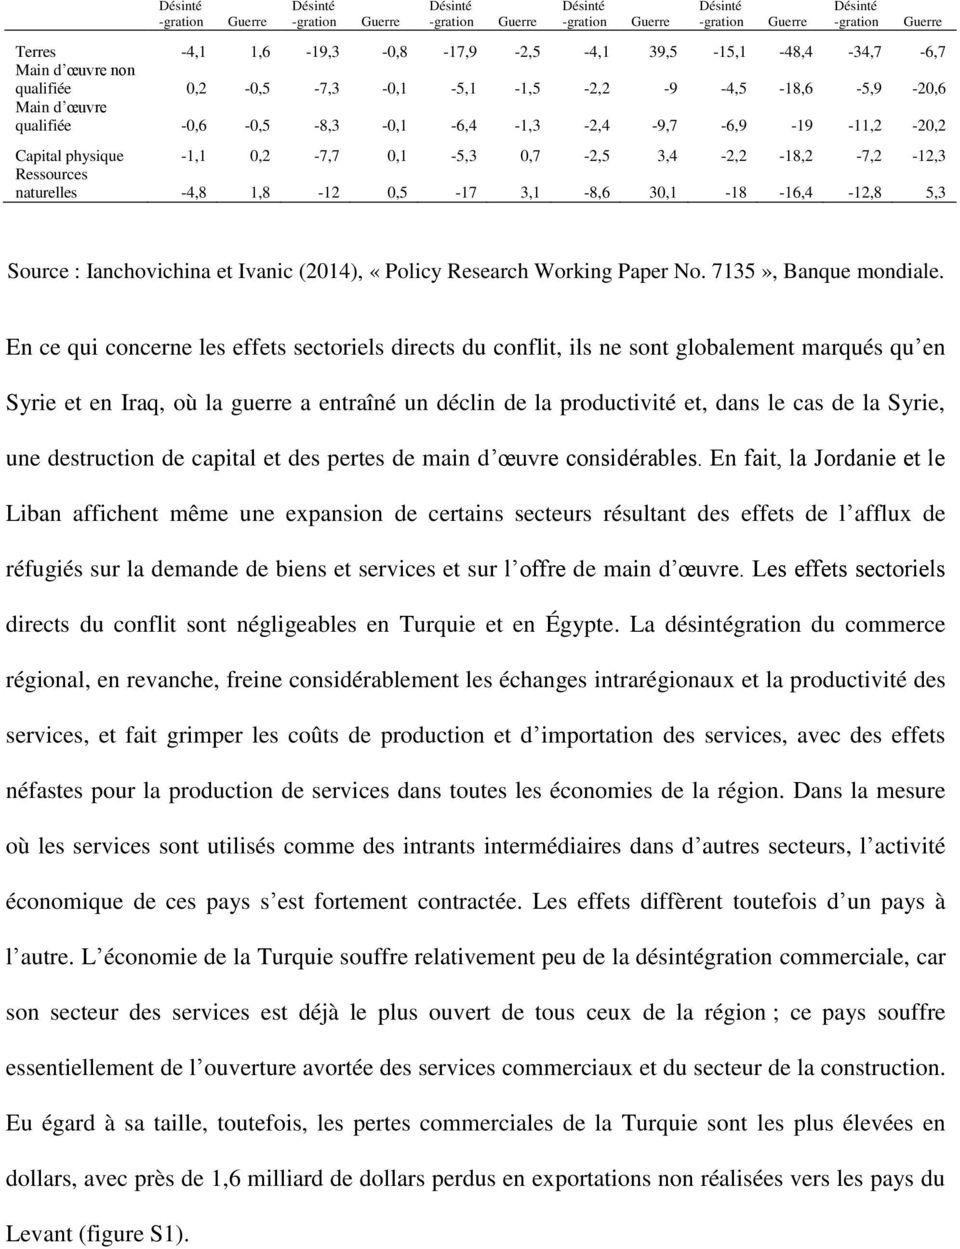 Ianchovichina et Ivanic (2014), «Policy Research Working Paper No. 7135», Banque mondiale.